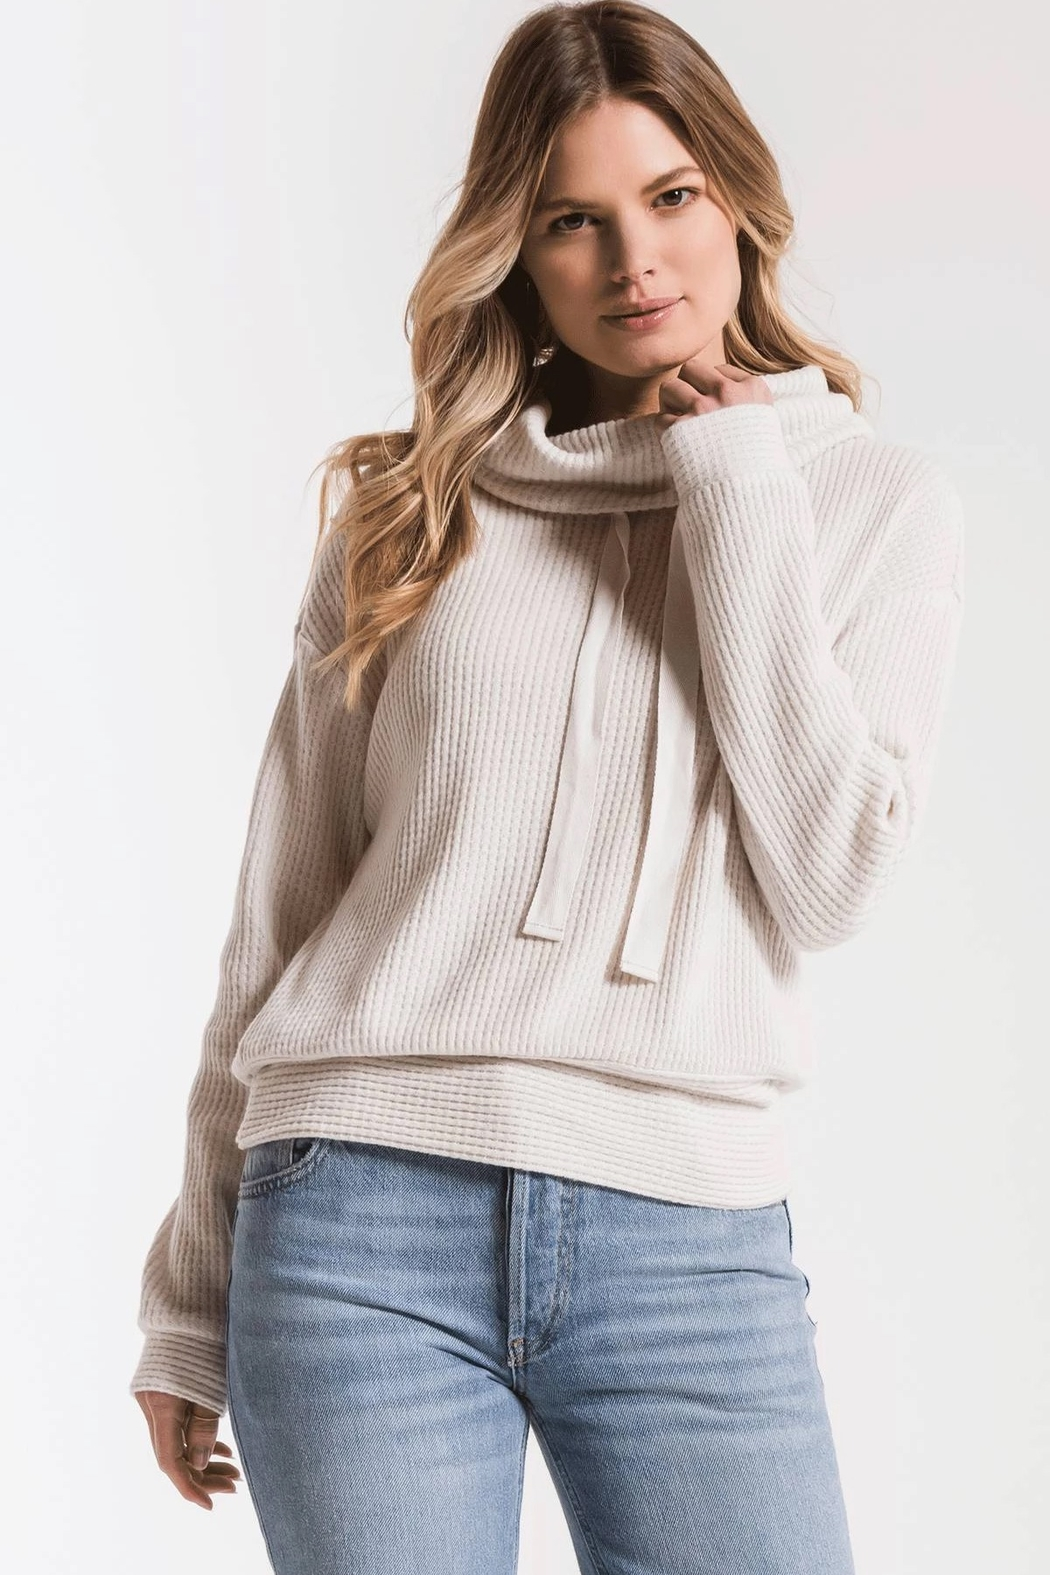 z supply Cowl Neck Waffle Thermal - Main Image